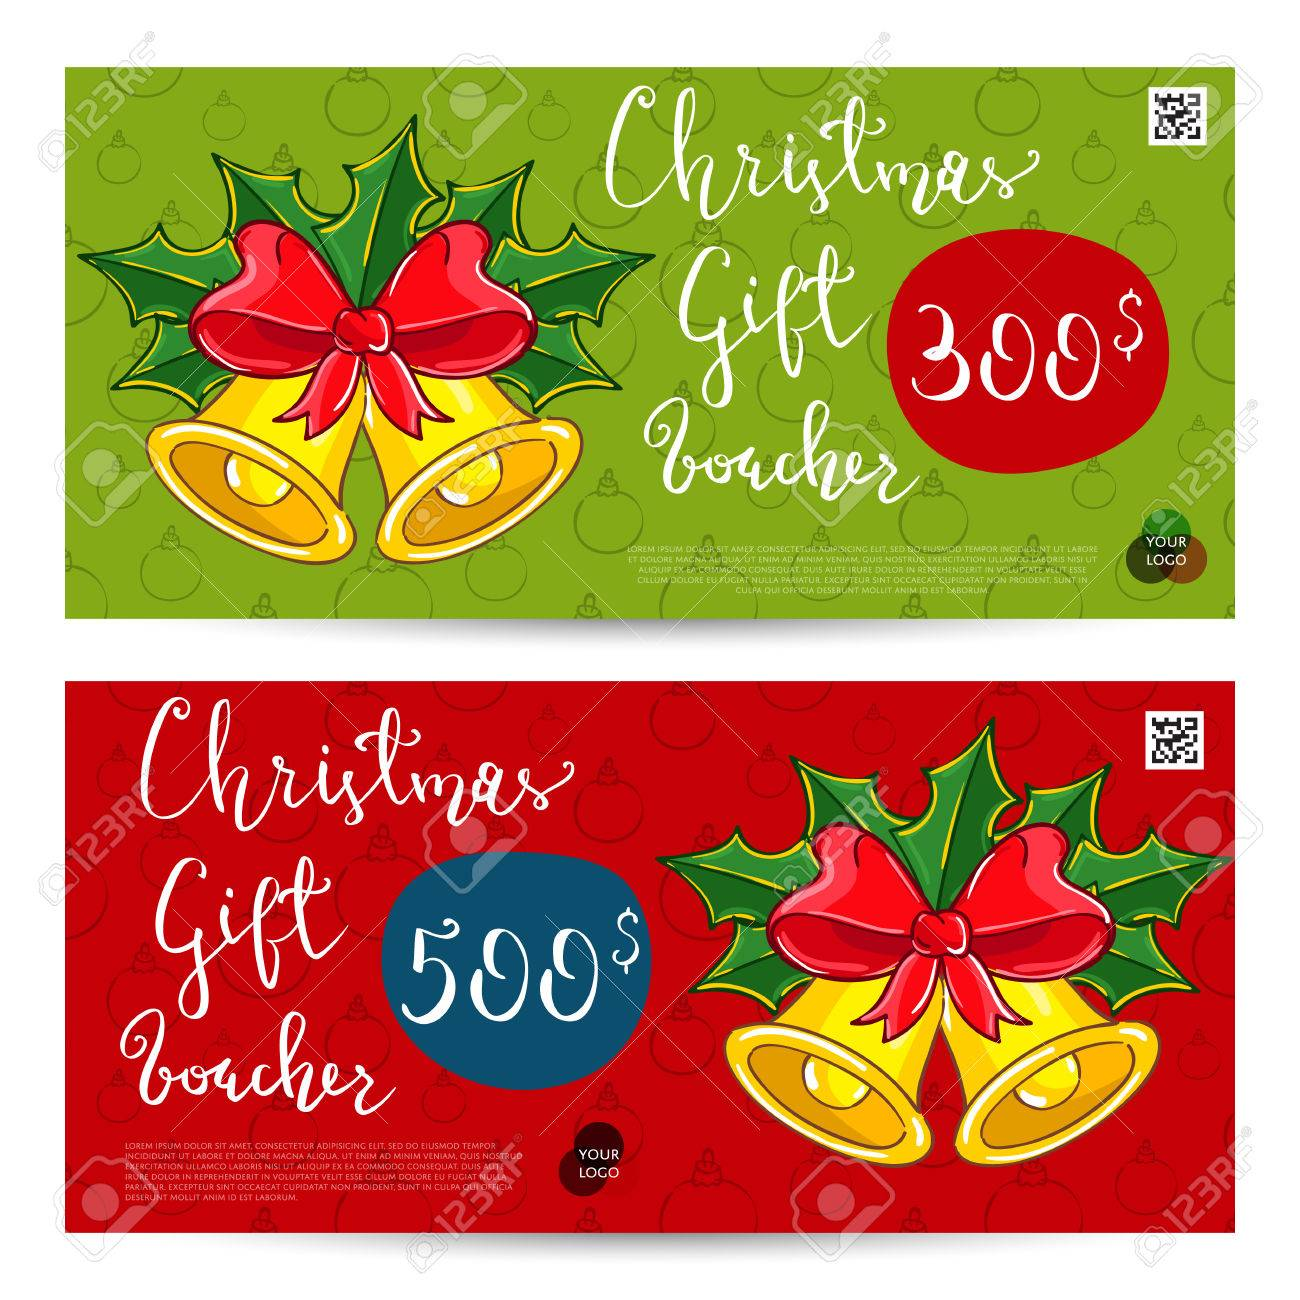 christmas gift voucher template gift coupon xmas attributes christmas gift voucher template gift coupon xmas attributes and prepaid sum christmas bells